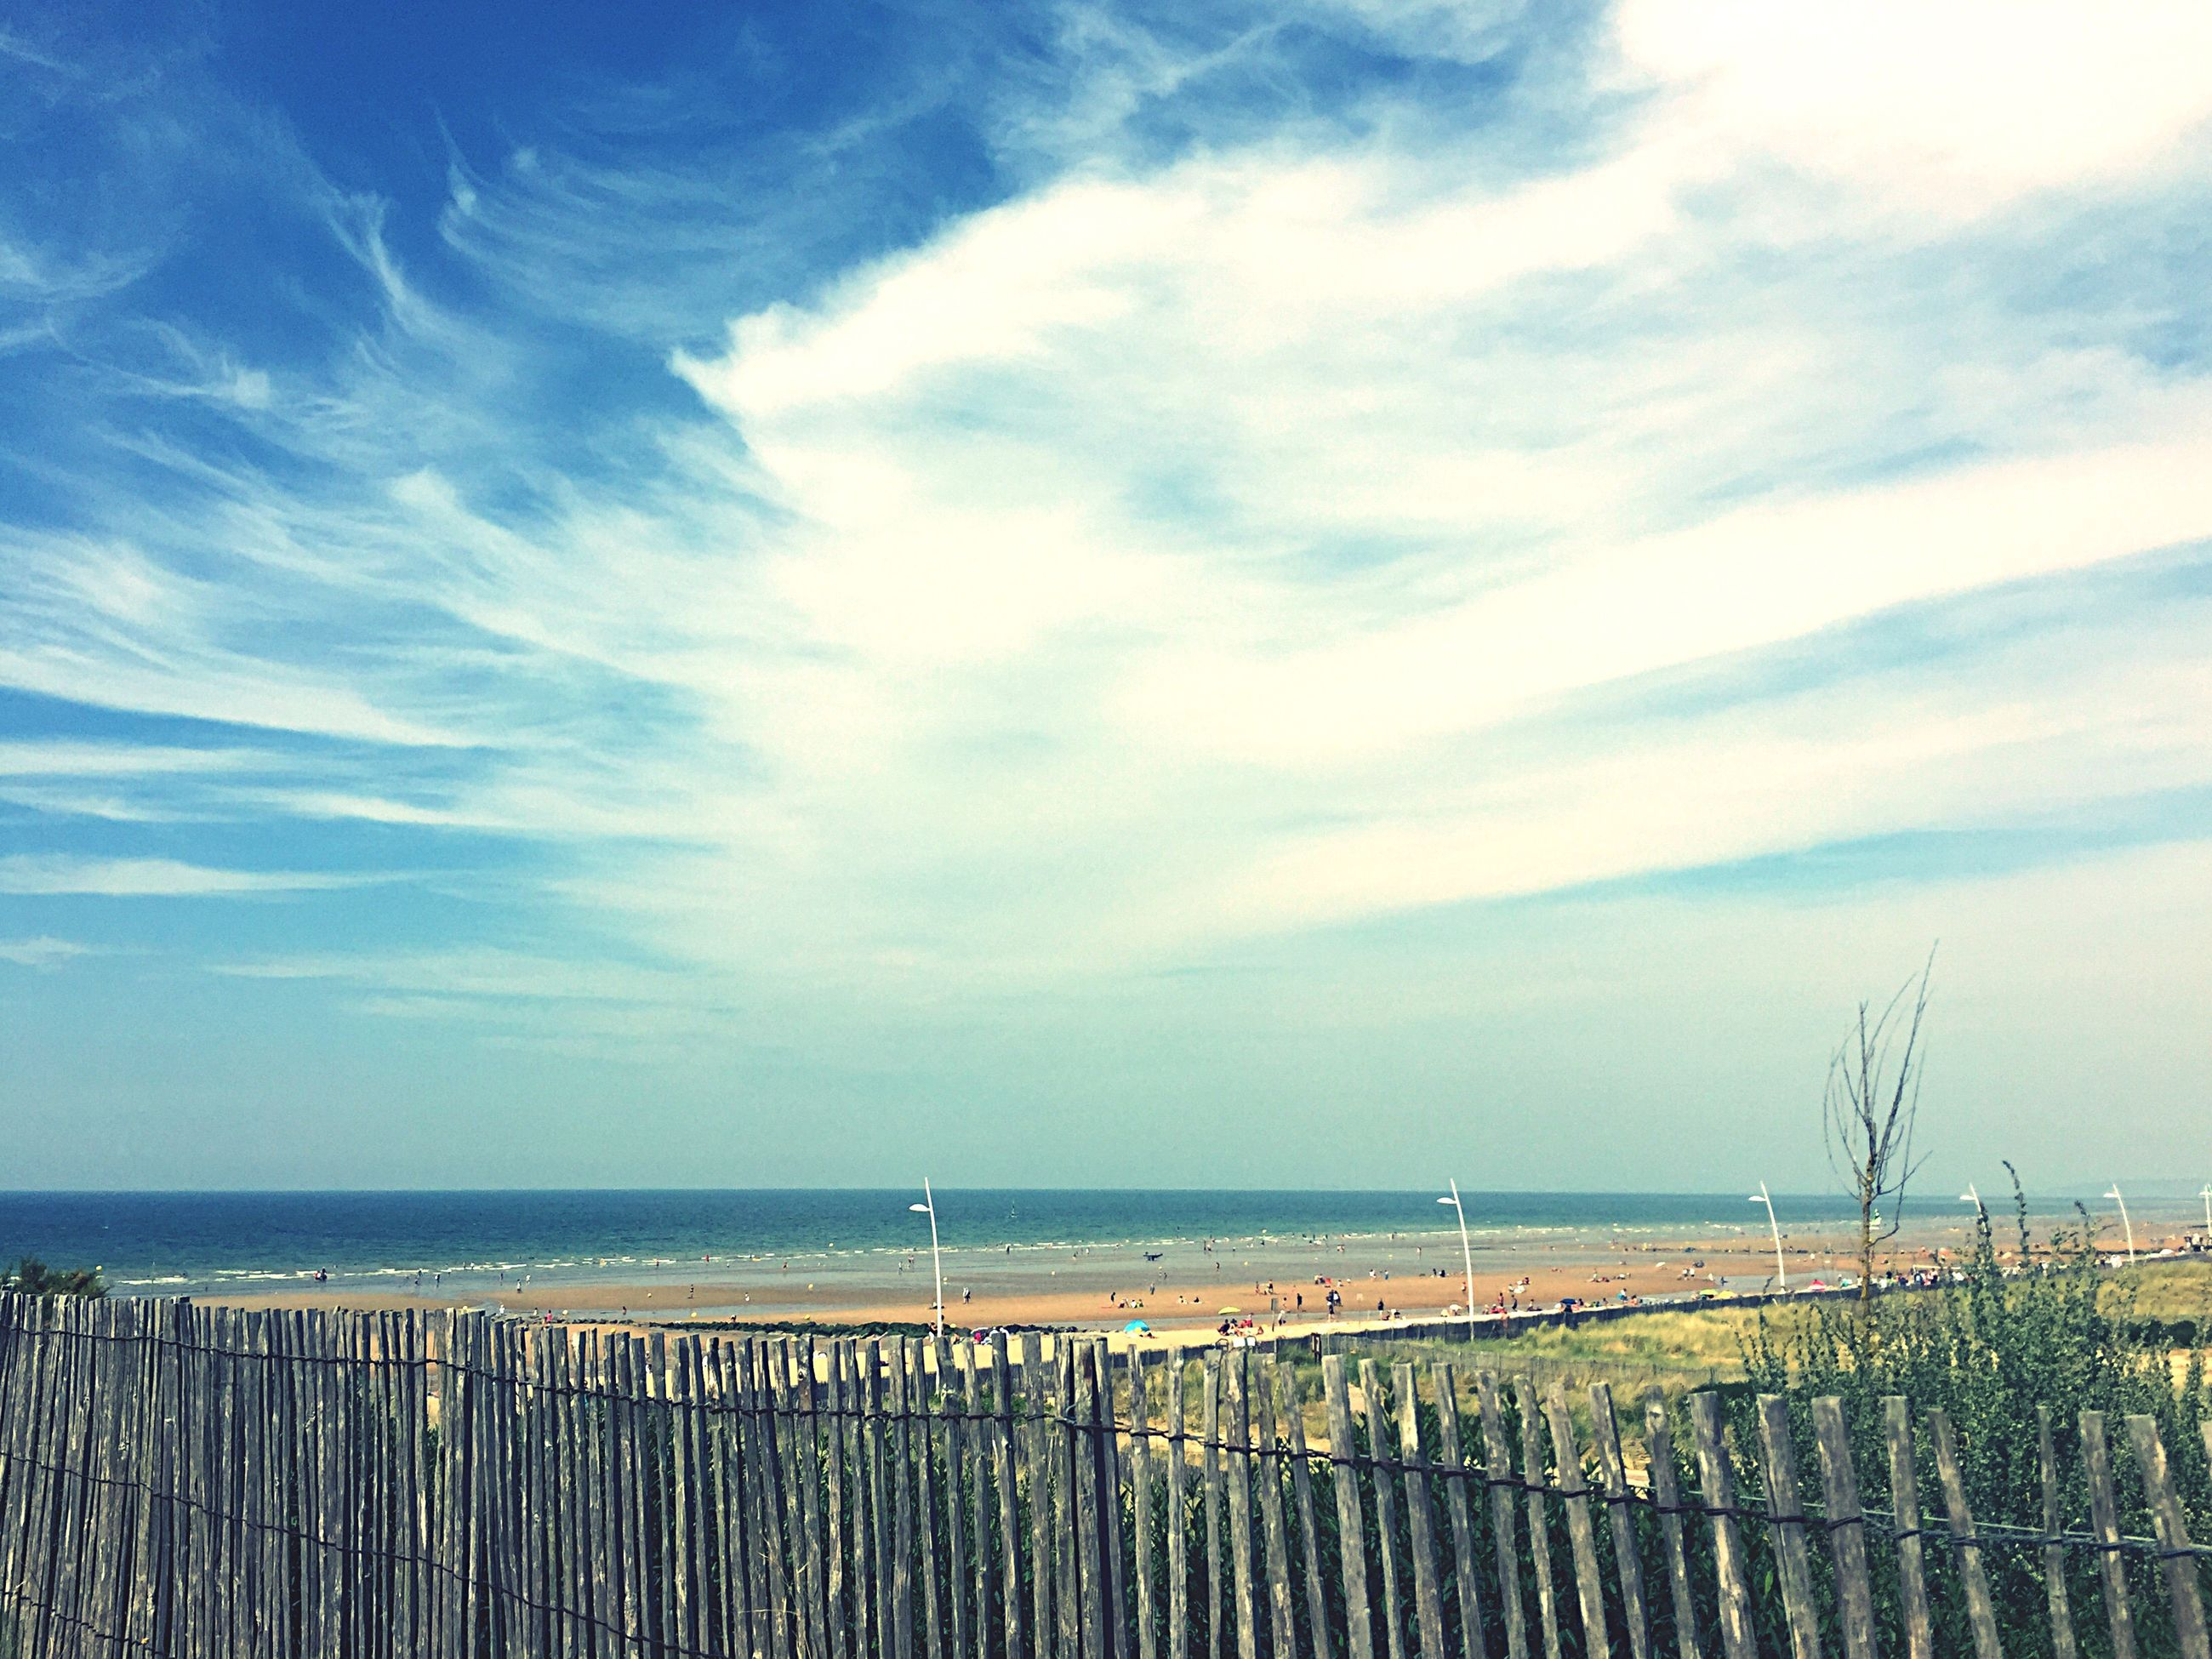 sea, horizon over water, water, sky, scenics, nature, tranquility, beauty in nature, tranquil scene, outdoors, day, no people, cloud - sky, beach, wooden post